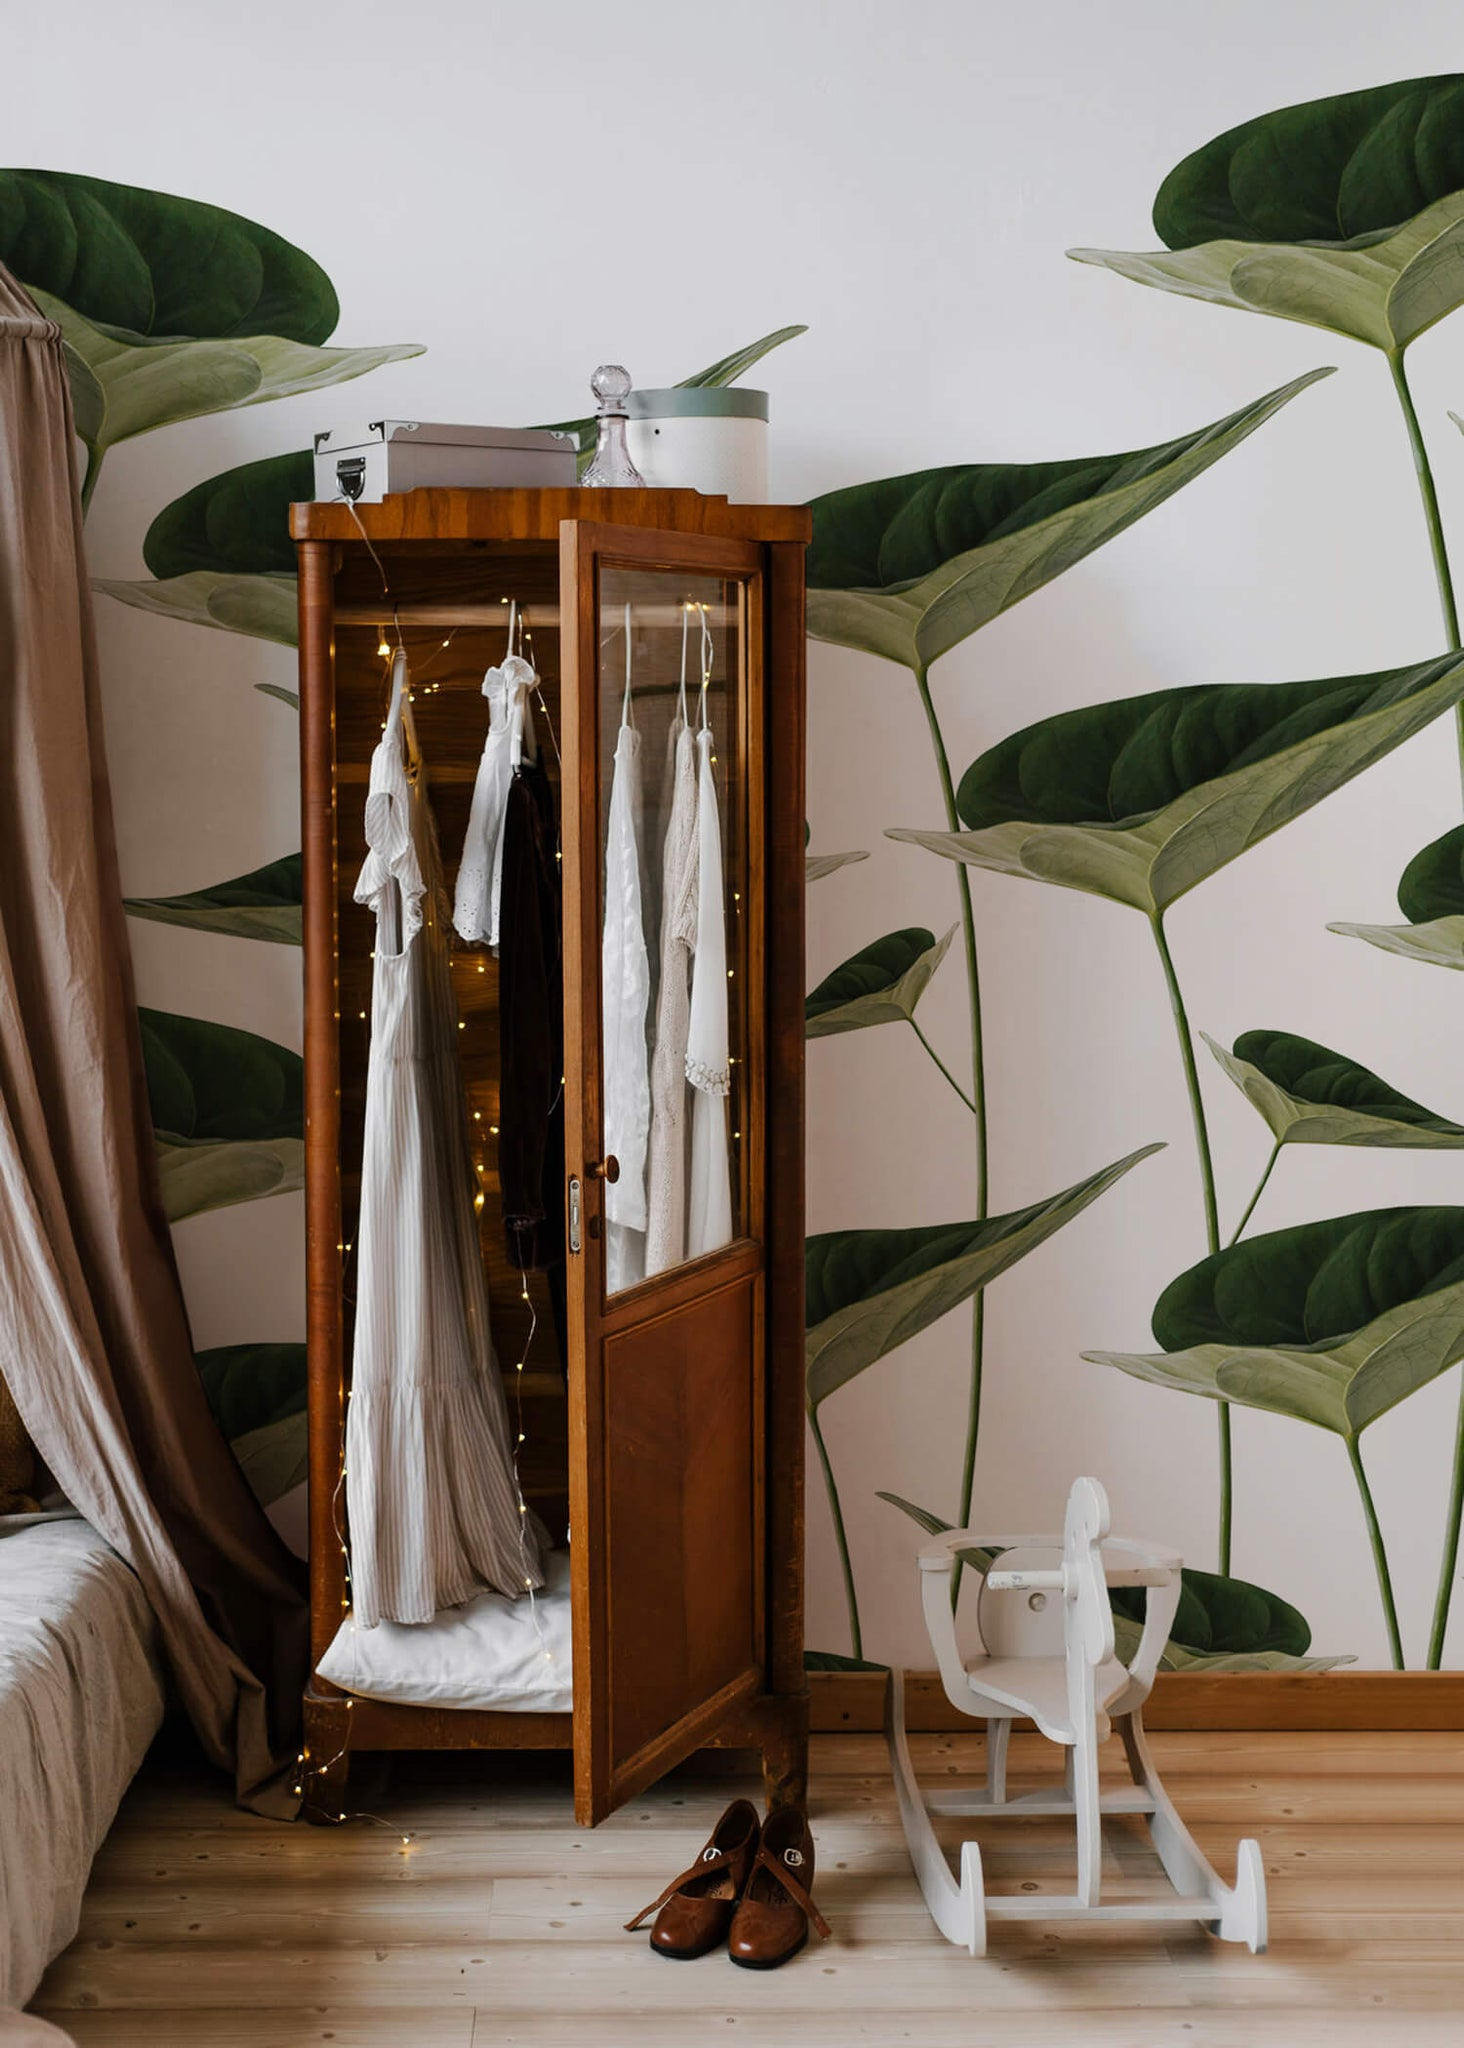 Magical woodland girls room interior with vintage botanical removable wallpaper